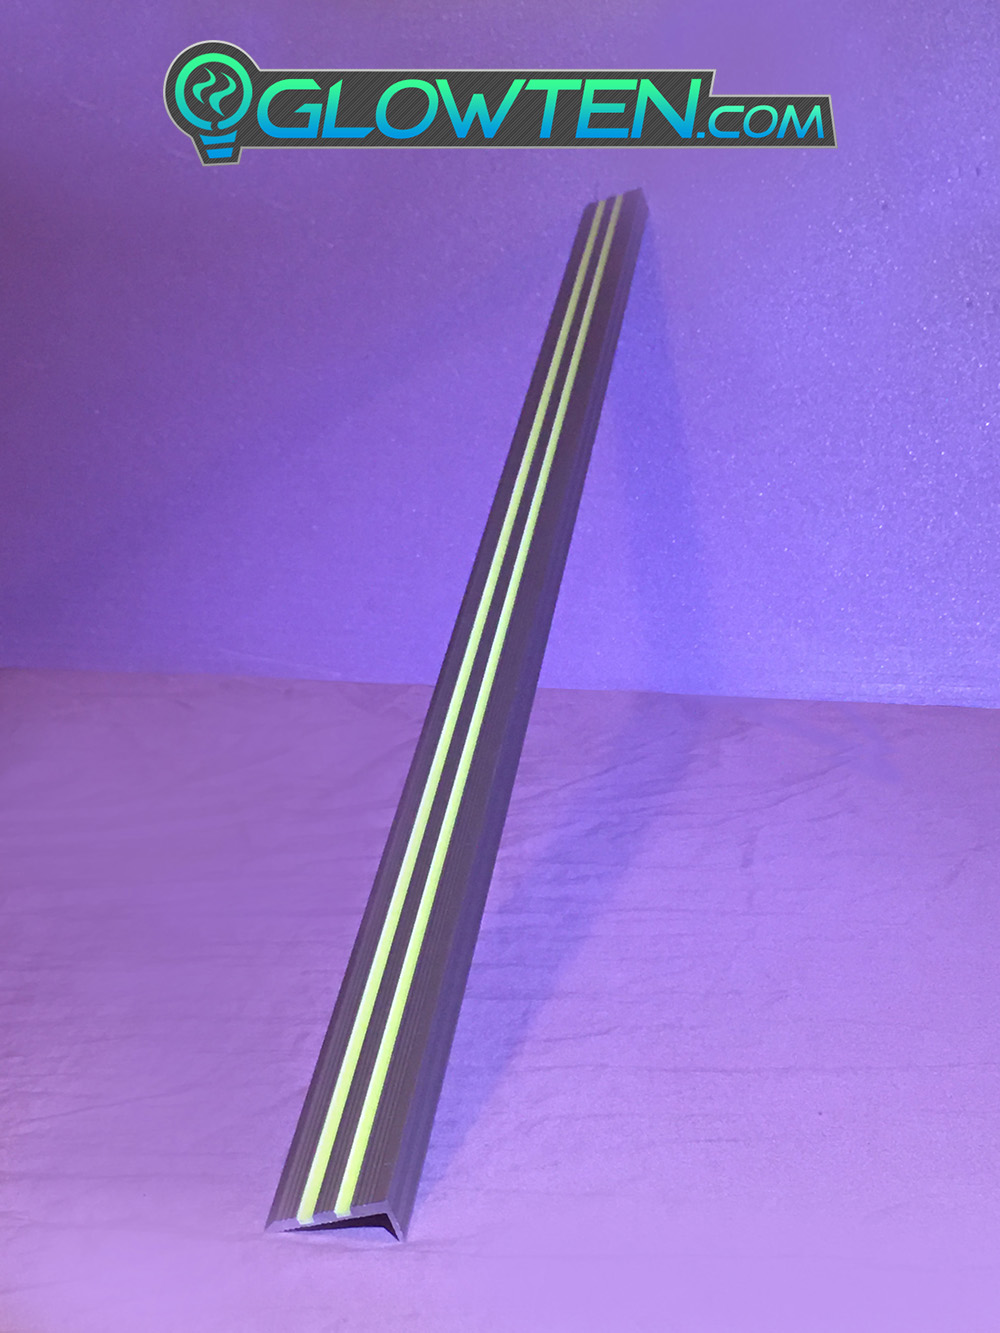 GLOWTEN.com - ANTI-SLIP STAIRS GRIP STRENGTH TREAD RISER 2-BANDS GLOW IN THE DARK LUMINOUS SAFETY STRIP NON-SKID SEE BETTER AT NIGHT PREVENT FALLING FOR MINIMUM 31.5